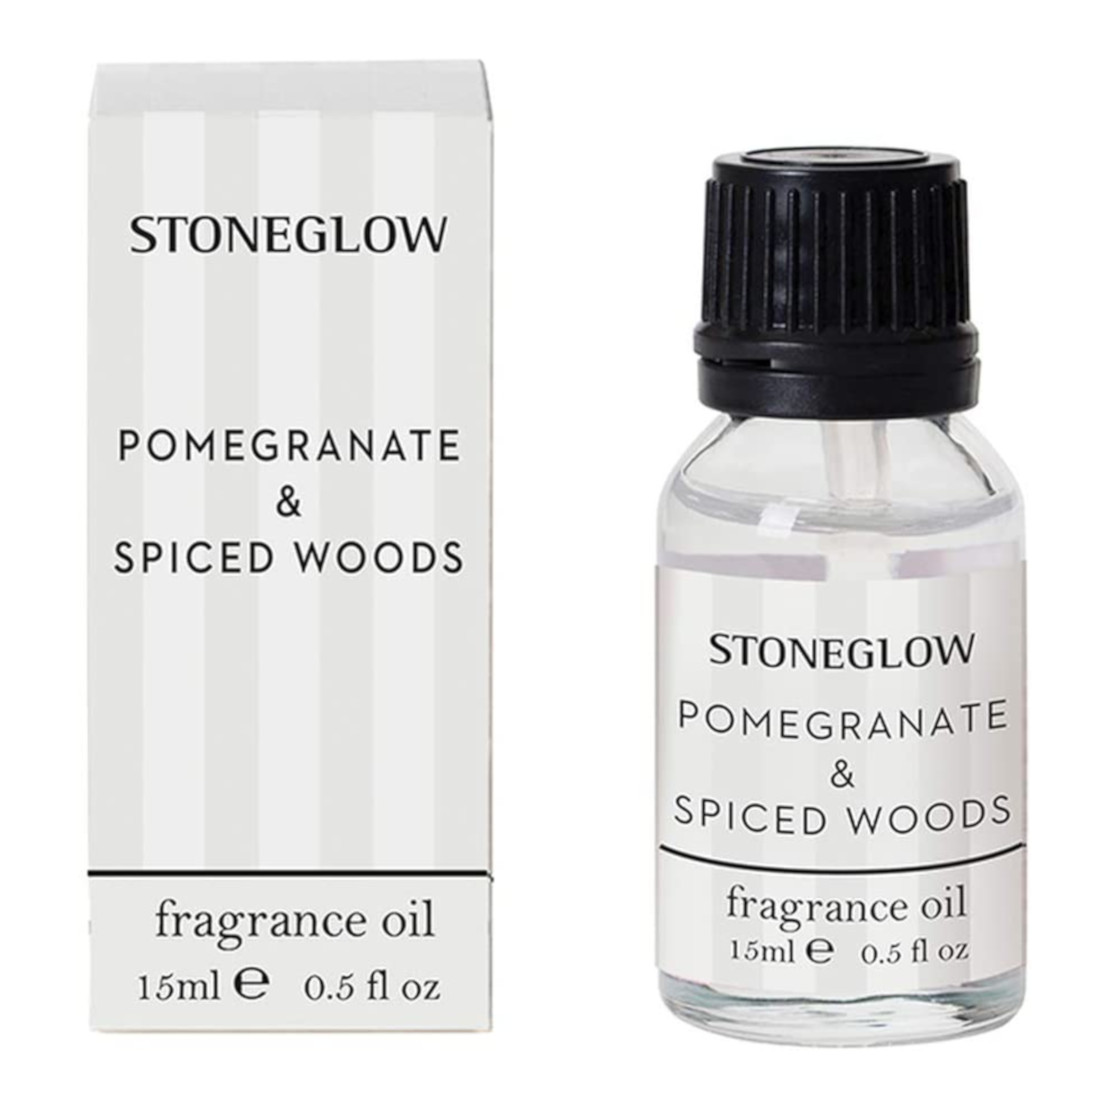 Stoneglow Pomegranate & Spiced Woods Fragrance Oil 15ml